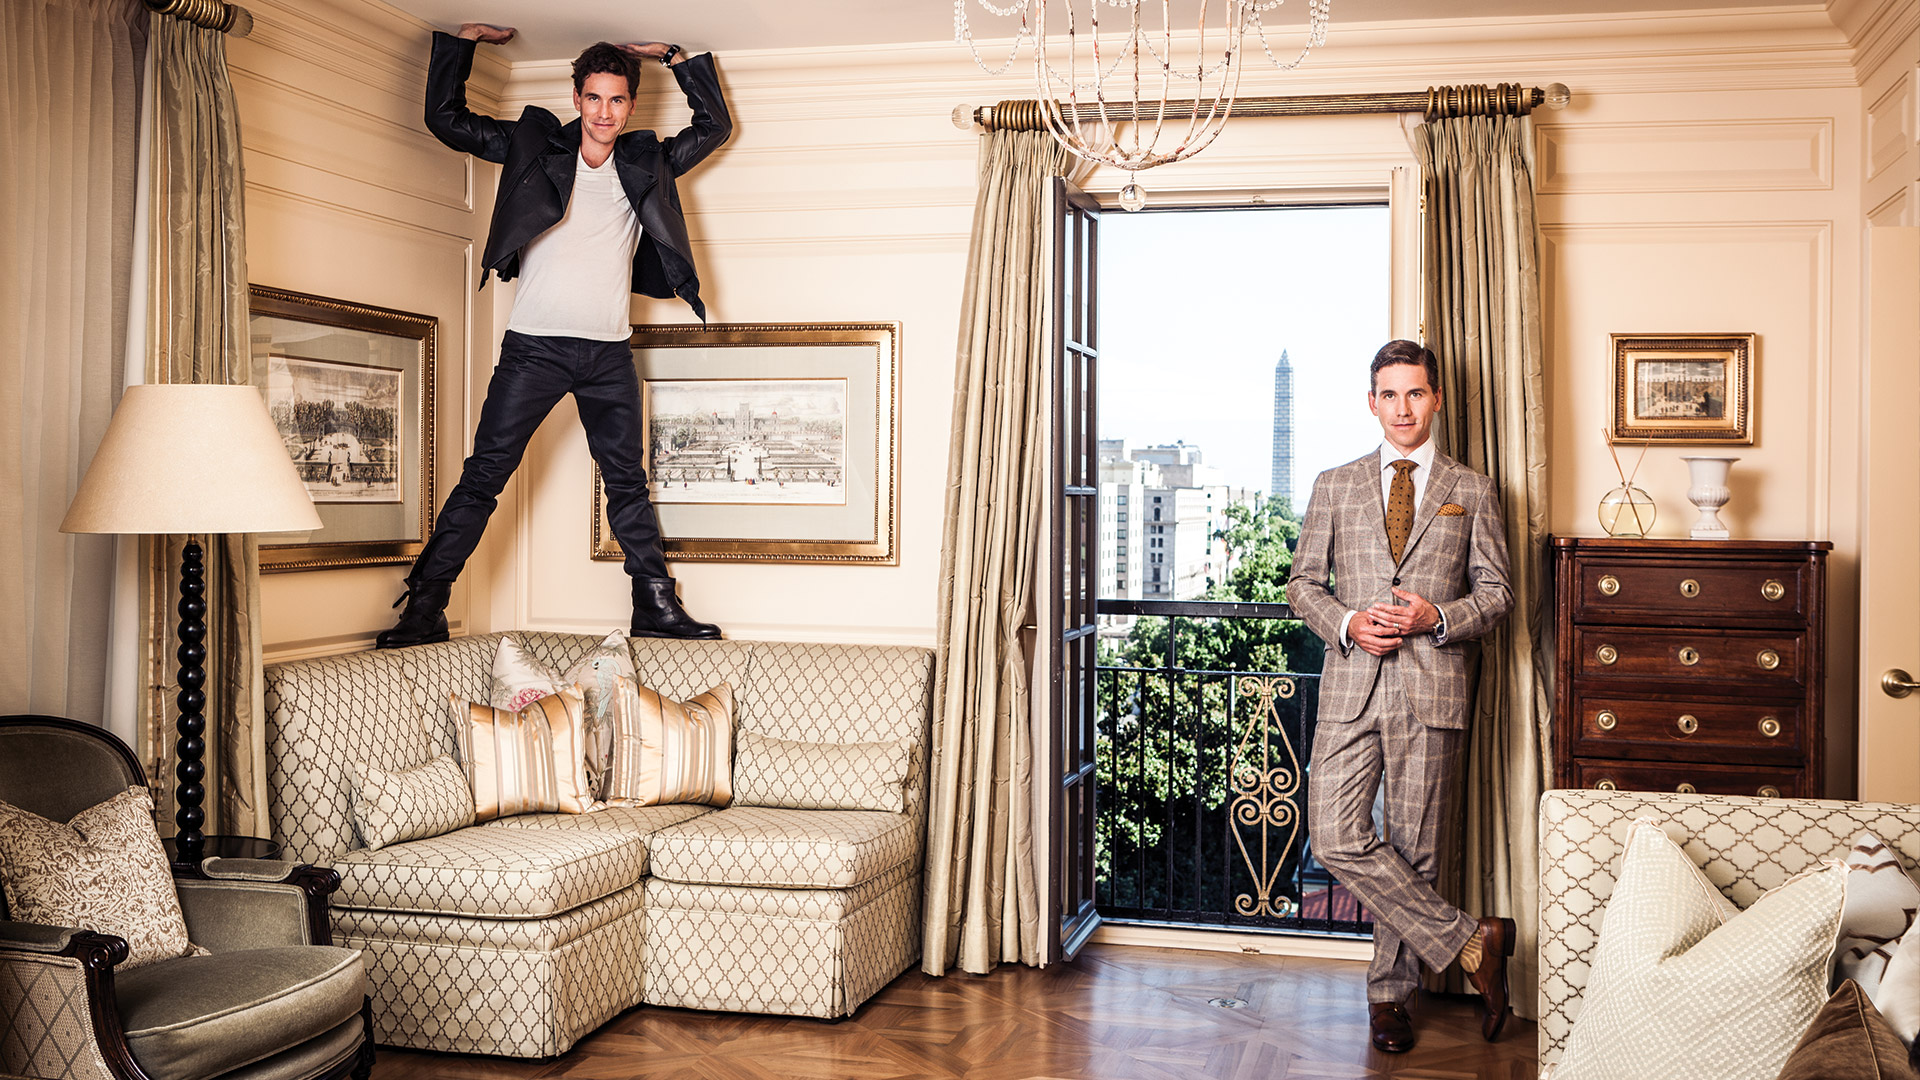 NCIS star Brian Dietzen raises the roof in these incredible photos!